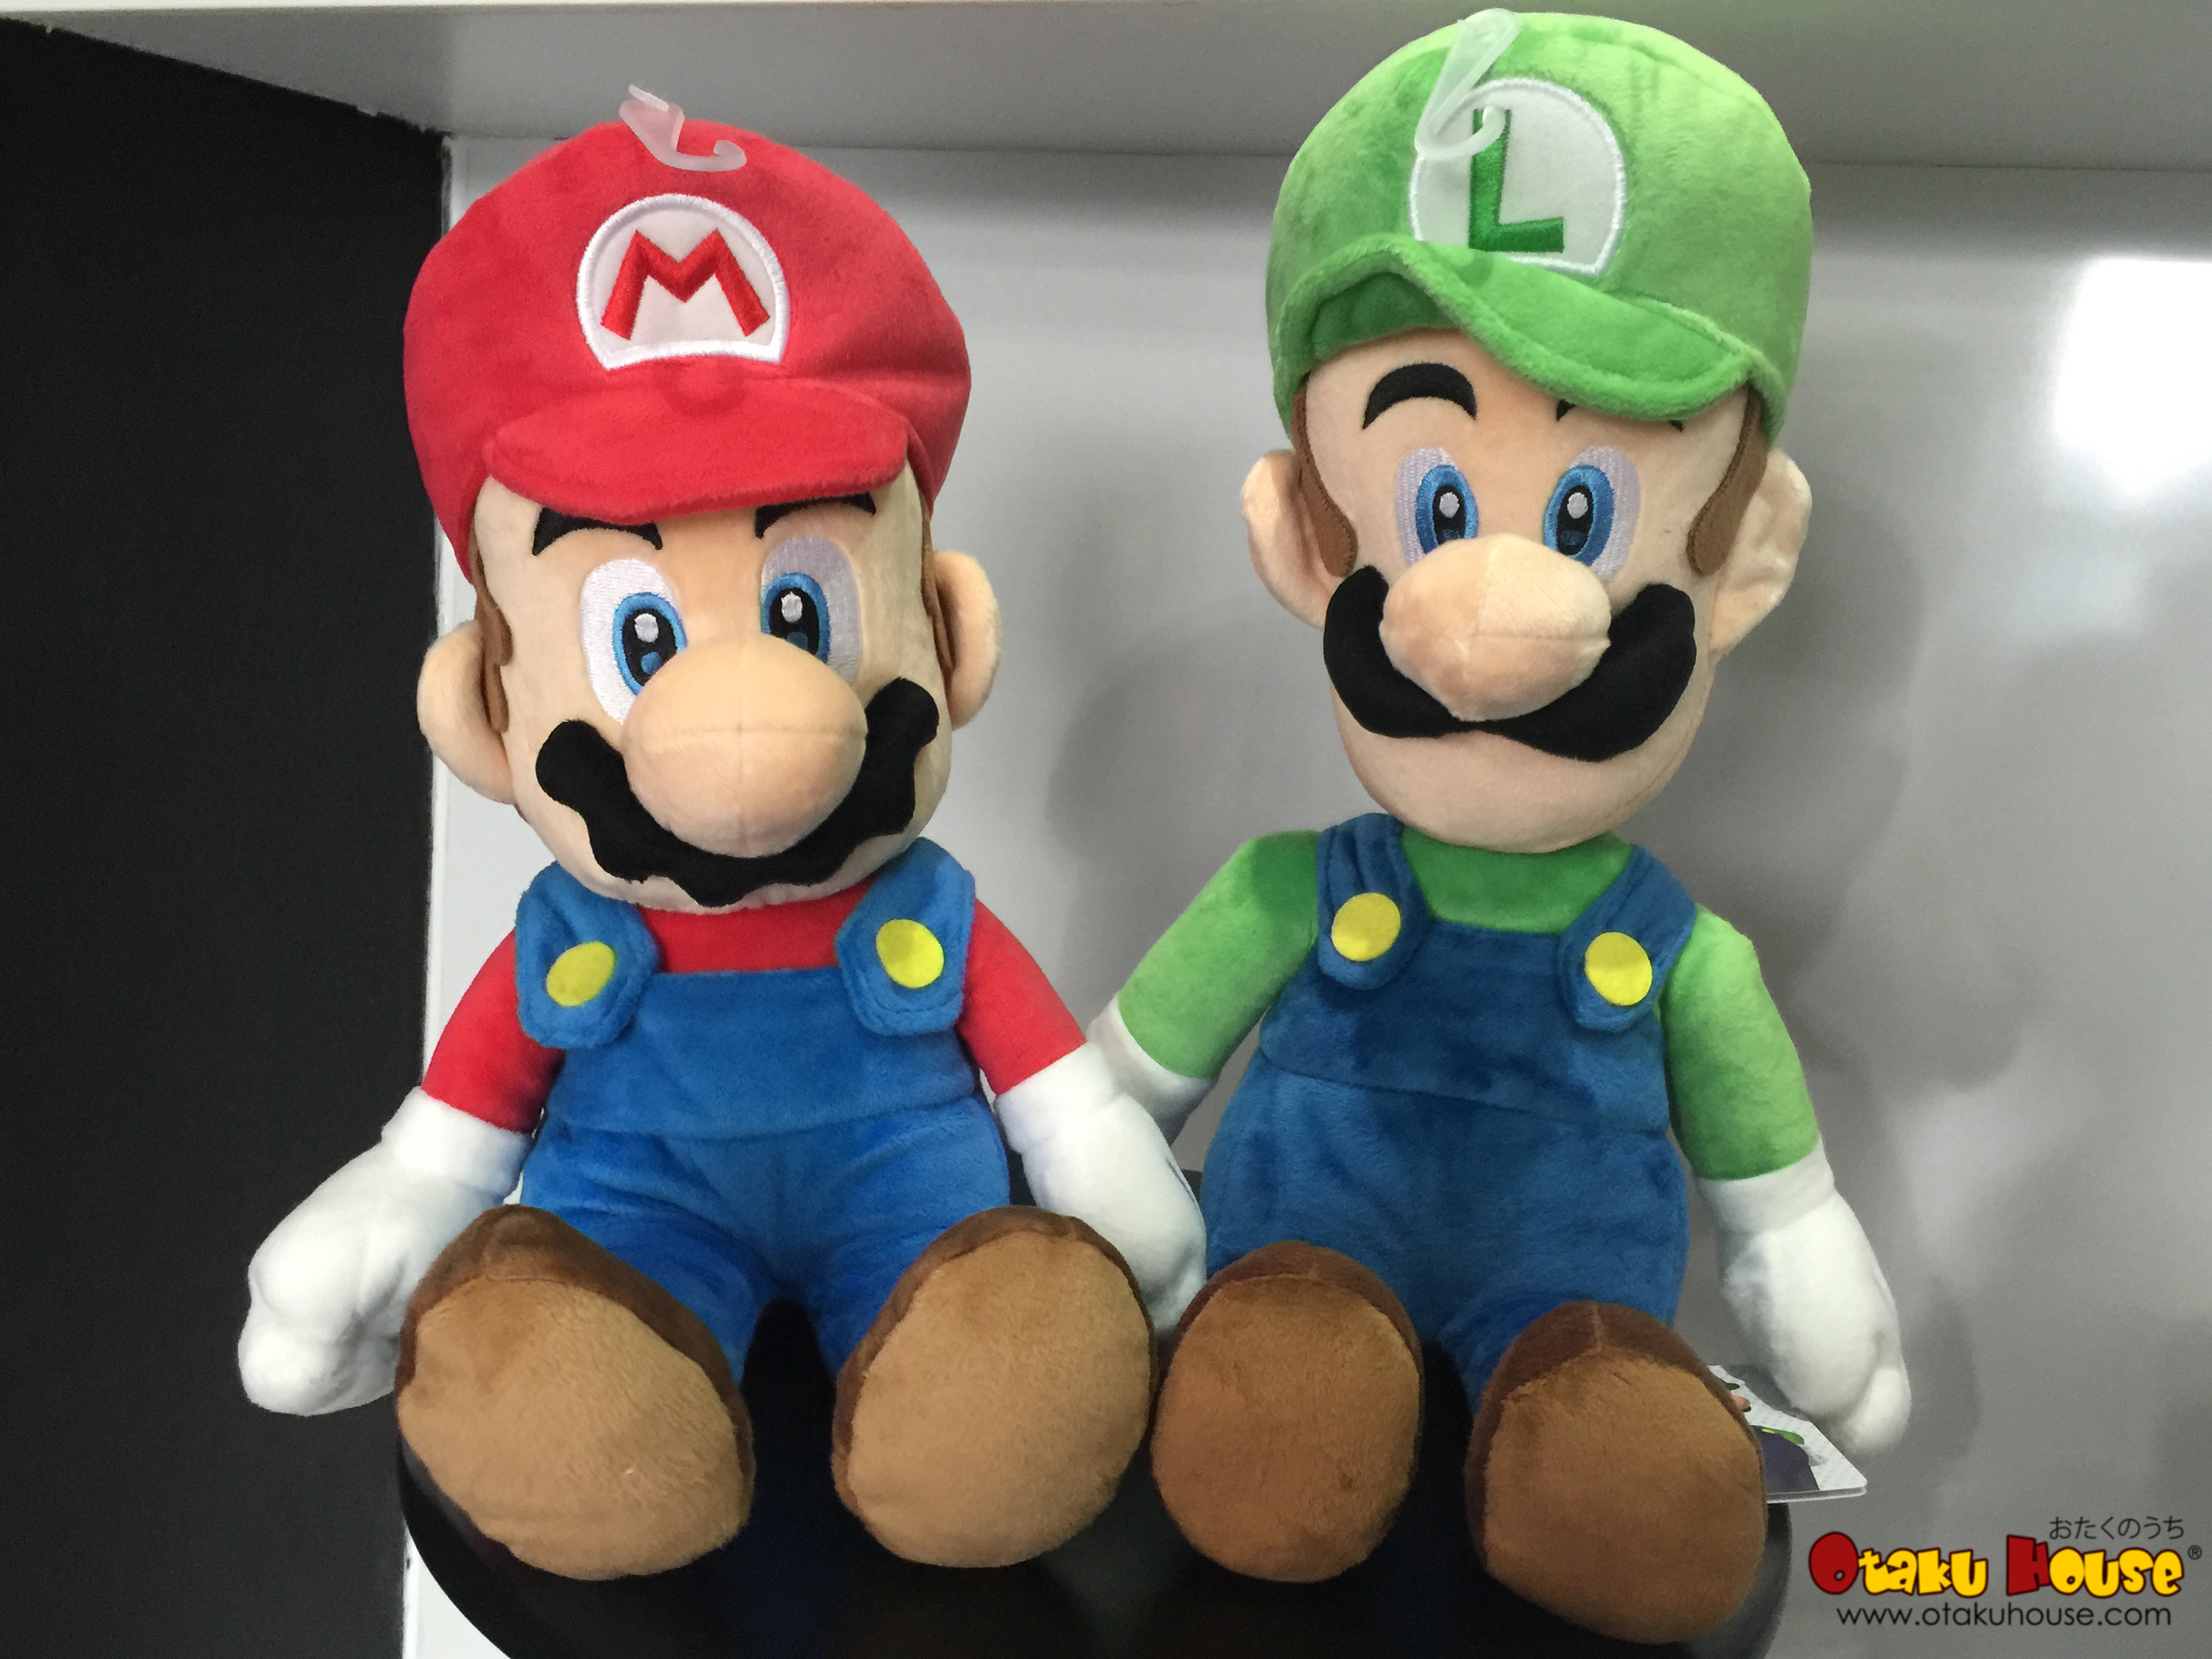 New Arrivals – Super Mario All Star Collection Plush Toys